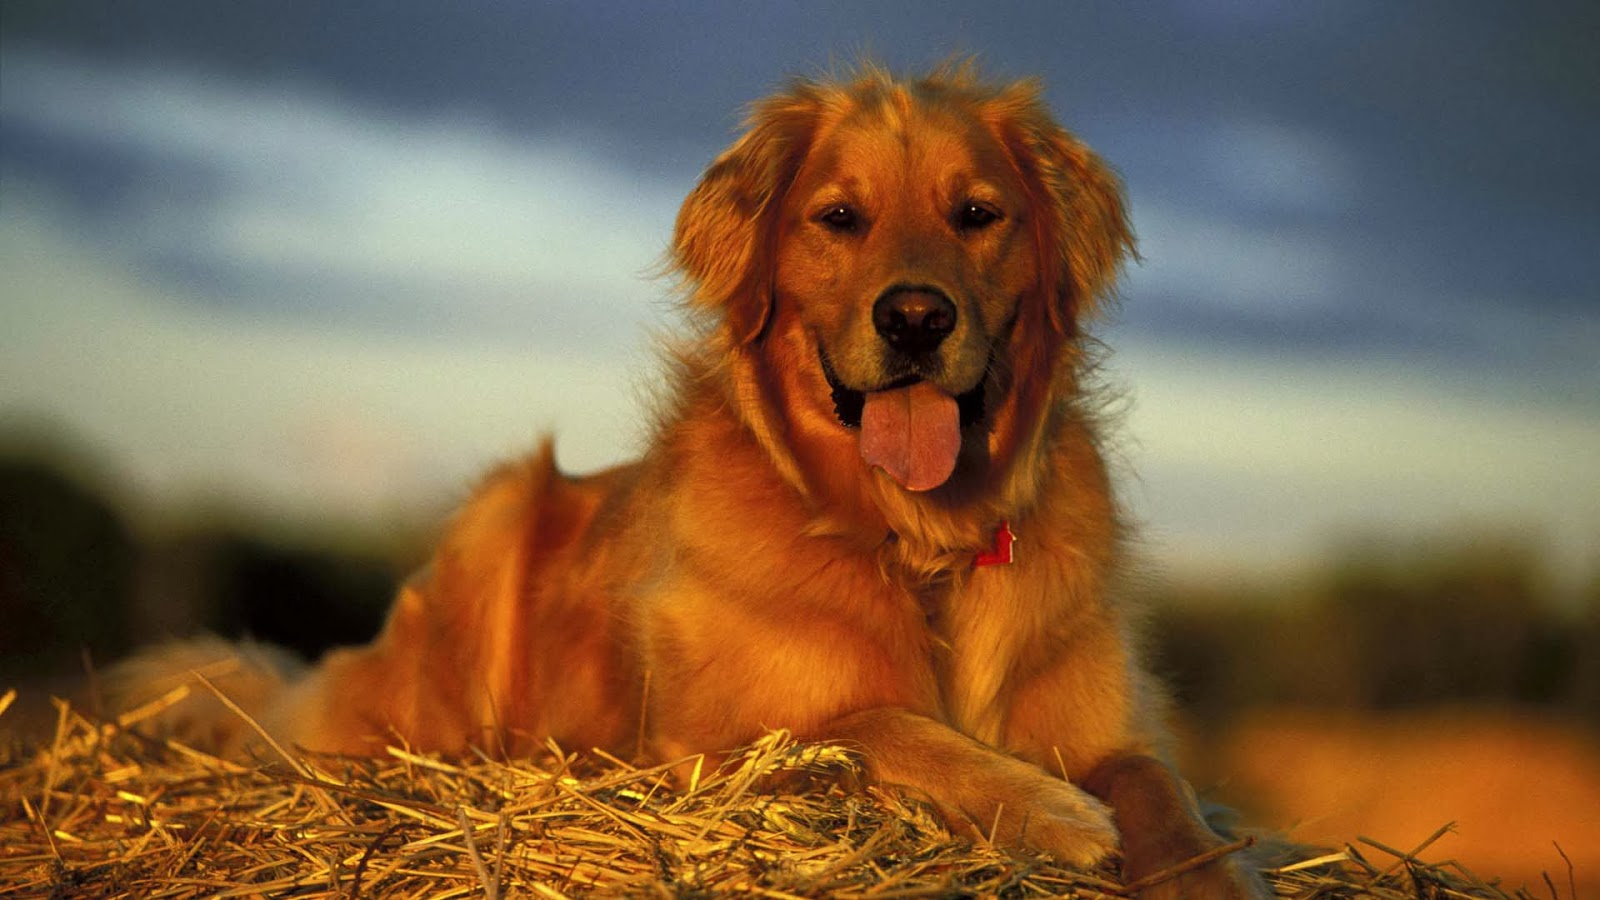 golden retriever puppy wallpapers - photo #29